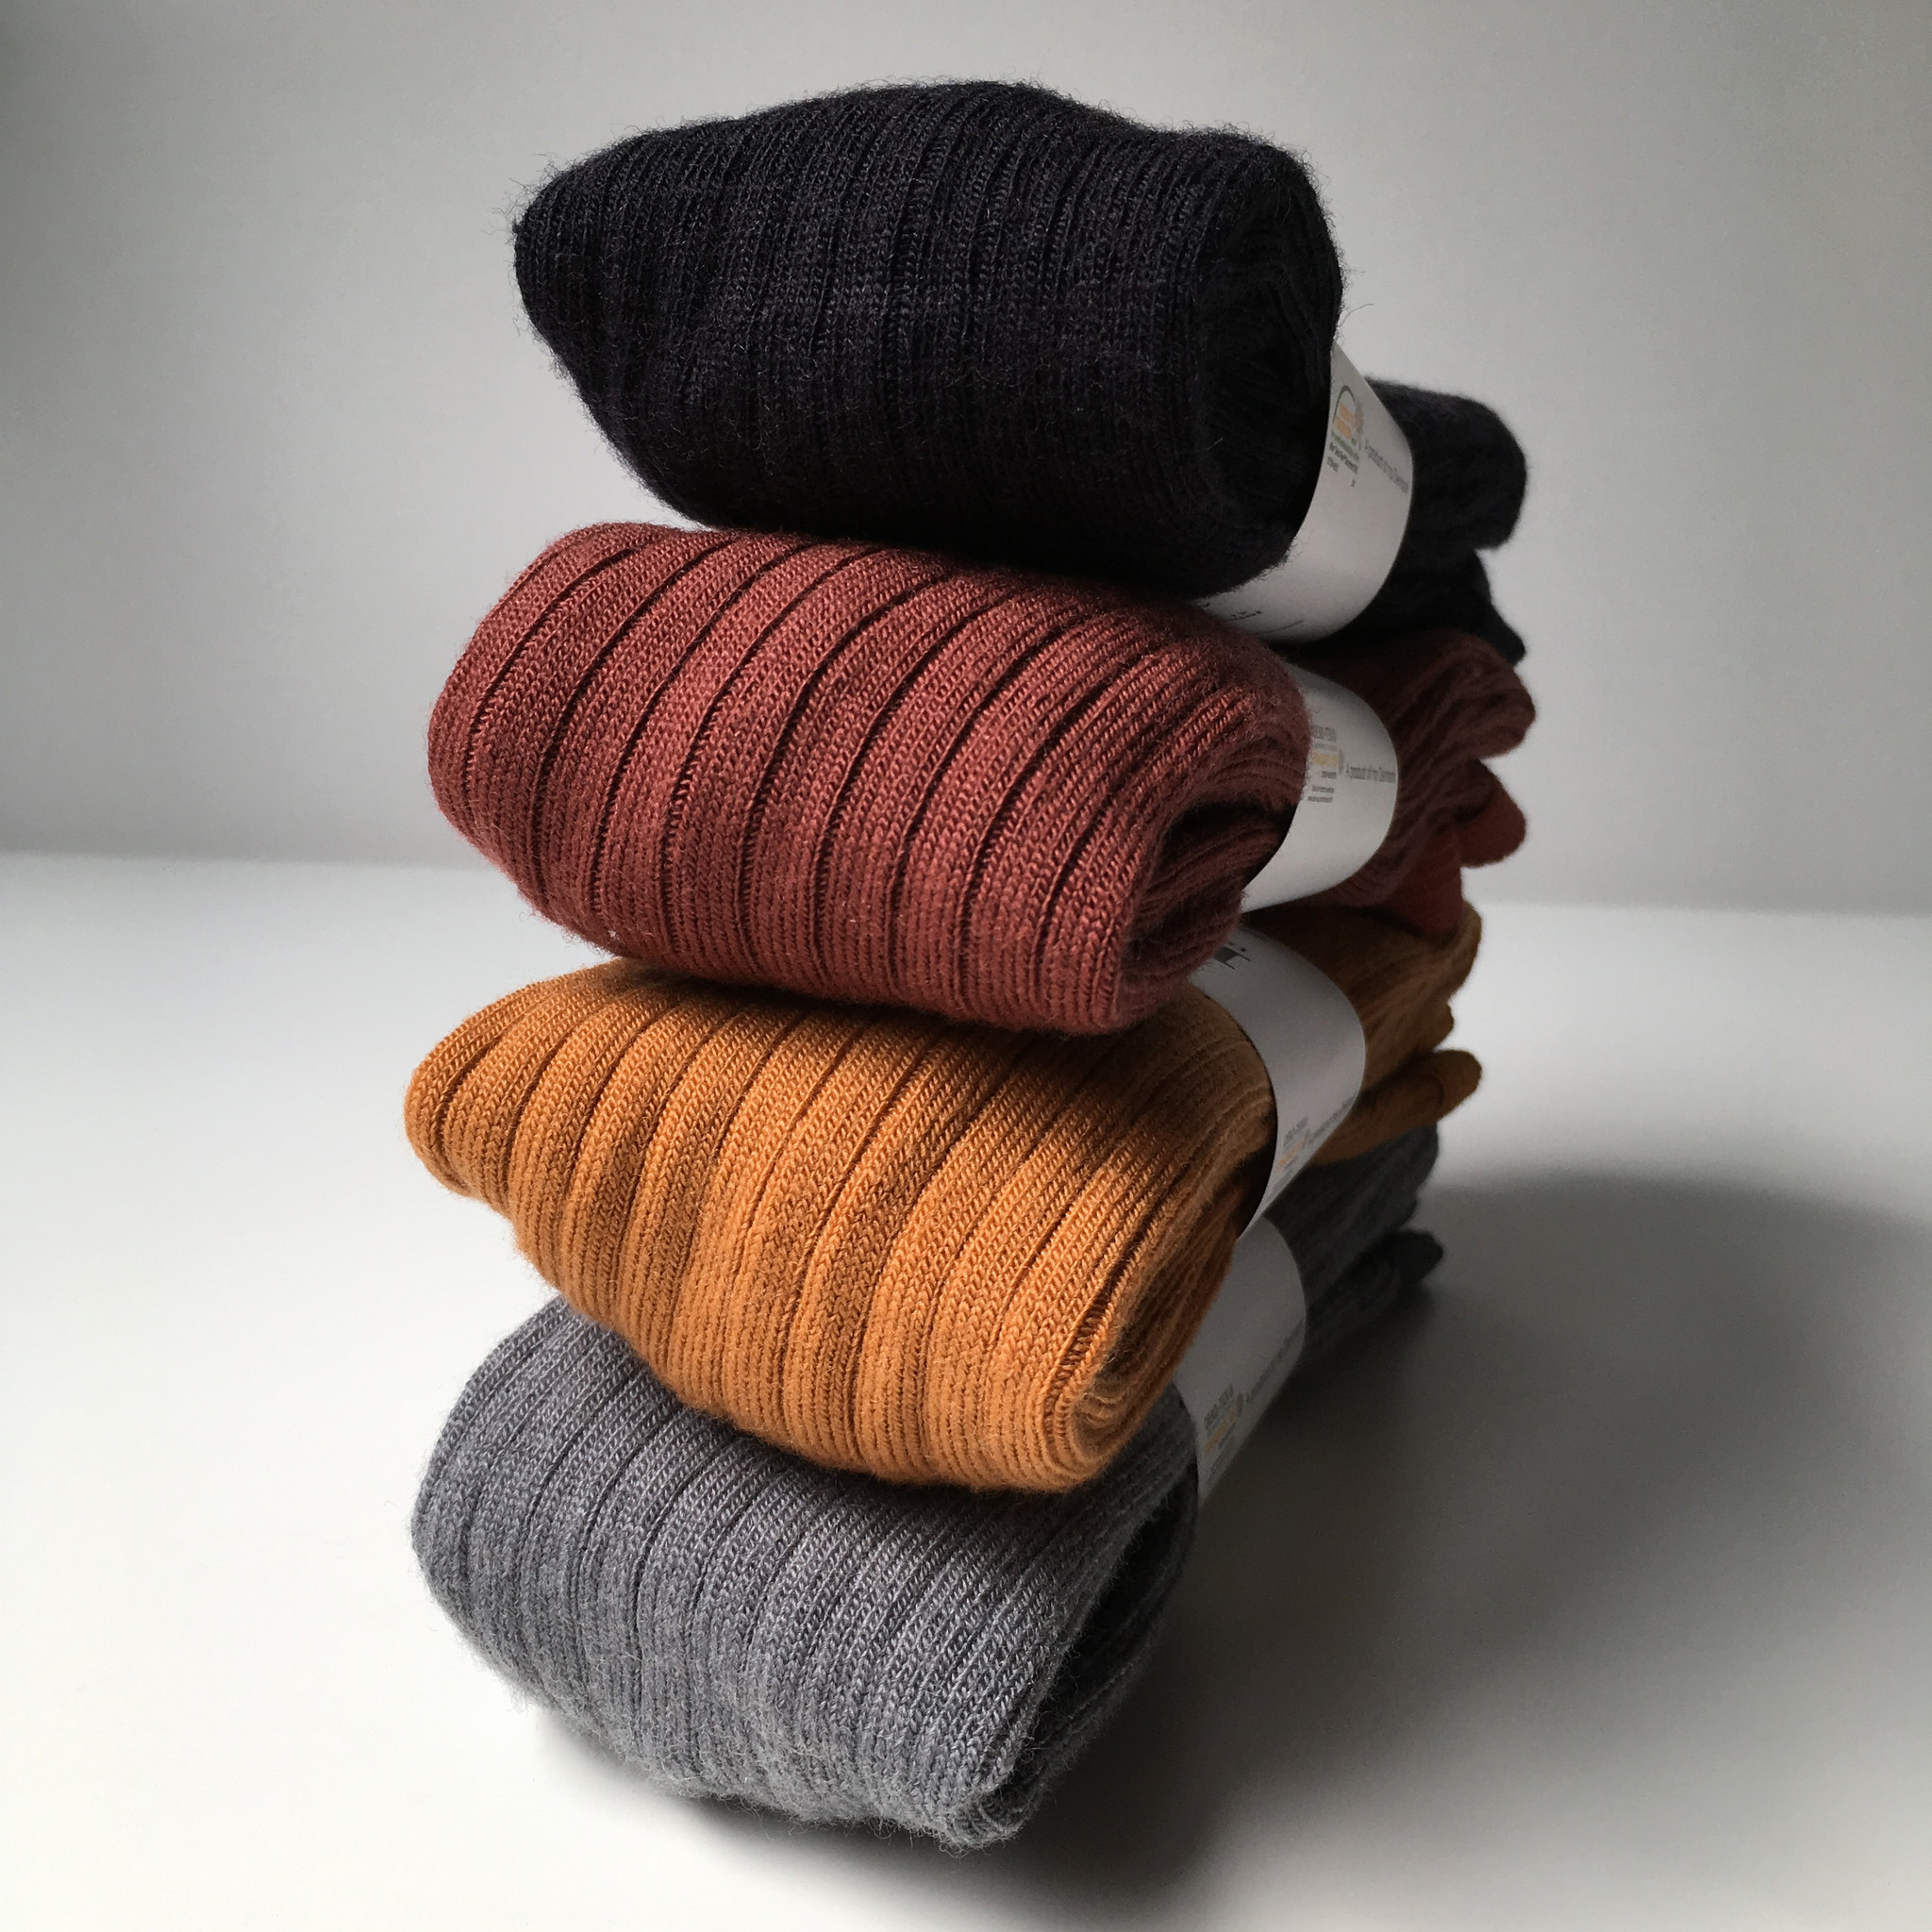 MP Denmark wool tights - ribbed - red brown  - 90 to 130